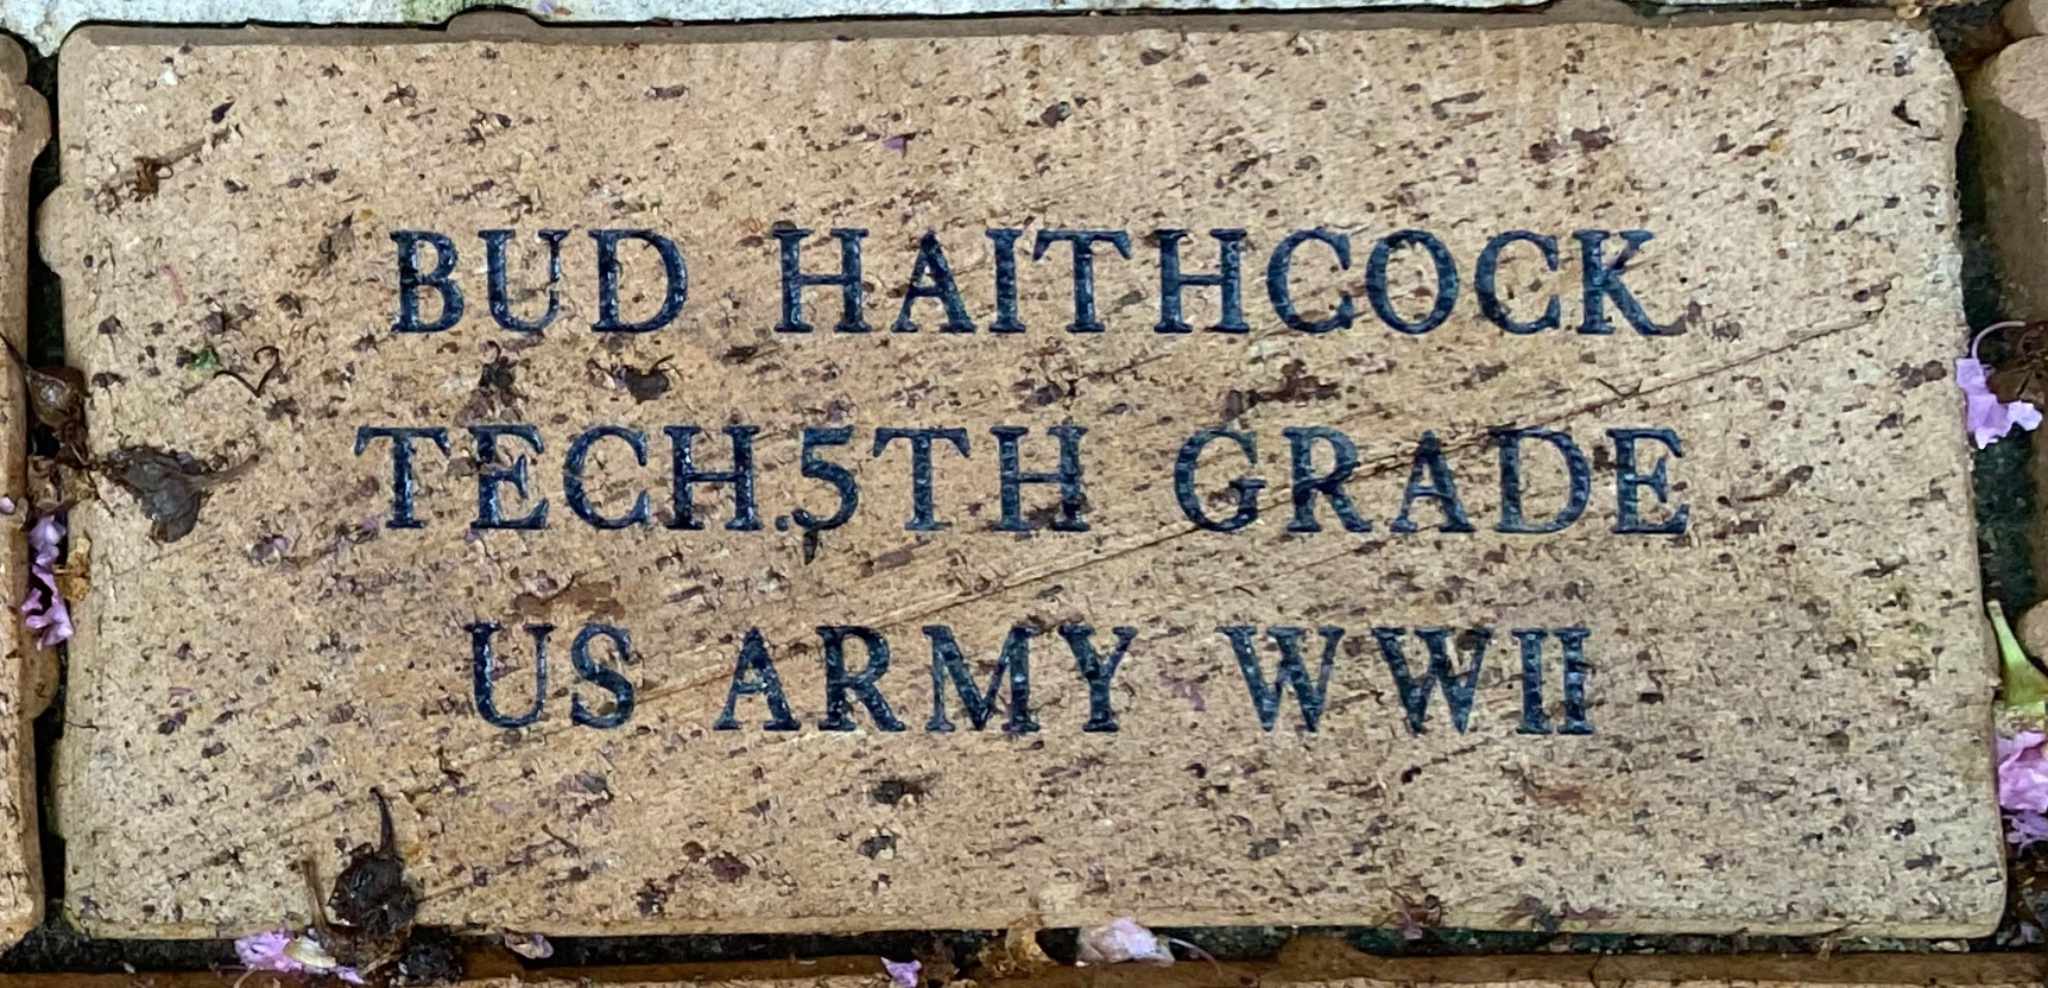 BUD HAITHCOCK TECH 5TH GRADE US ARMY WWII